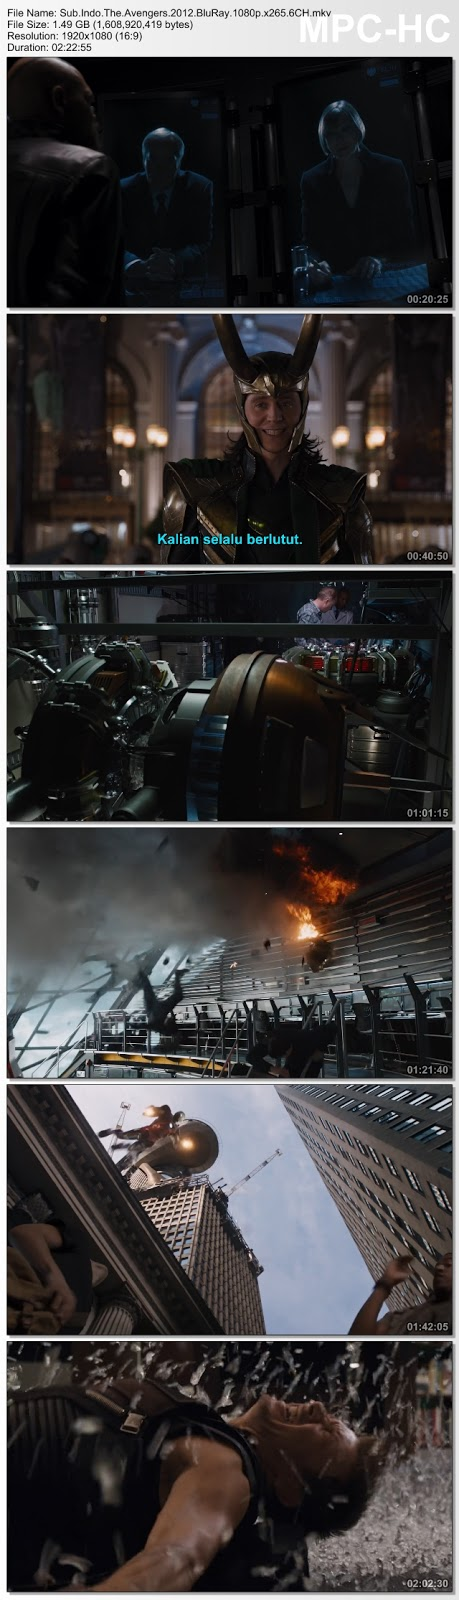 Screenshots Download Film Gratis The Avengers (2012) BluRay 480p MP4 Subtitle Bahasa Indonesia 3GP